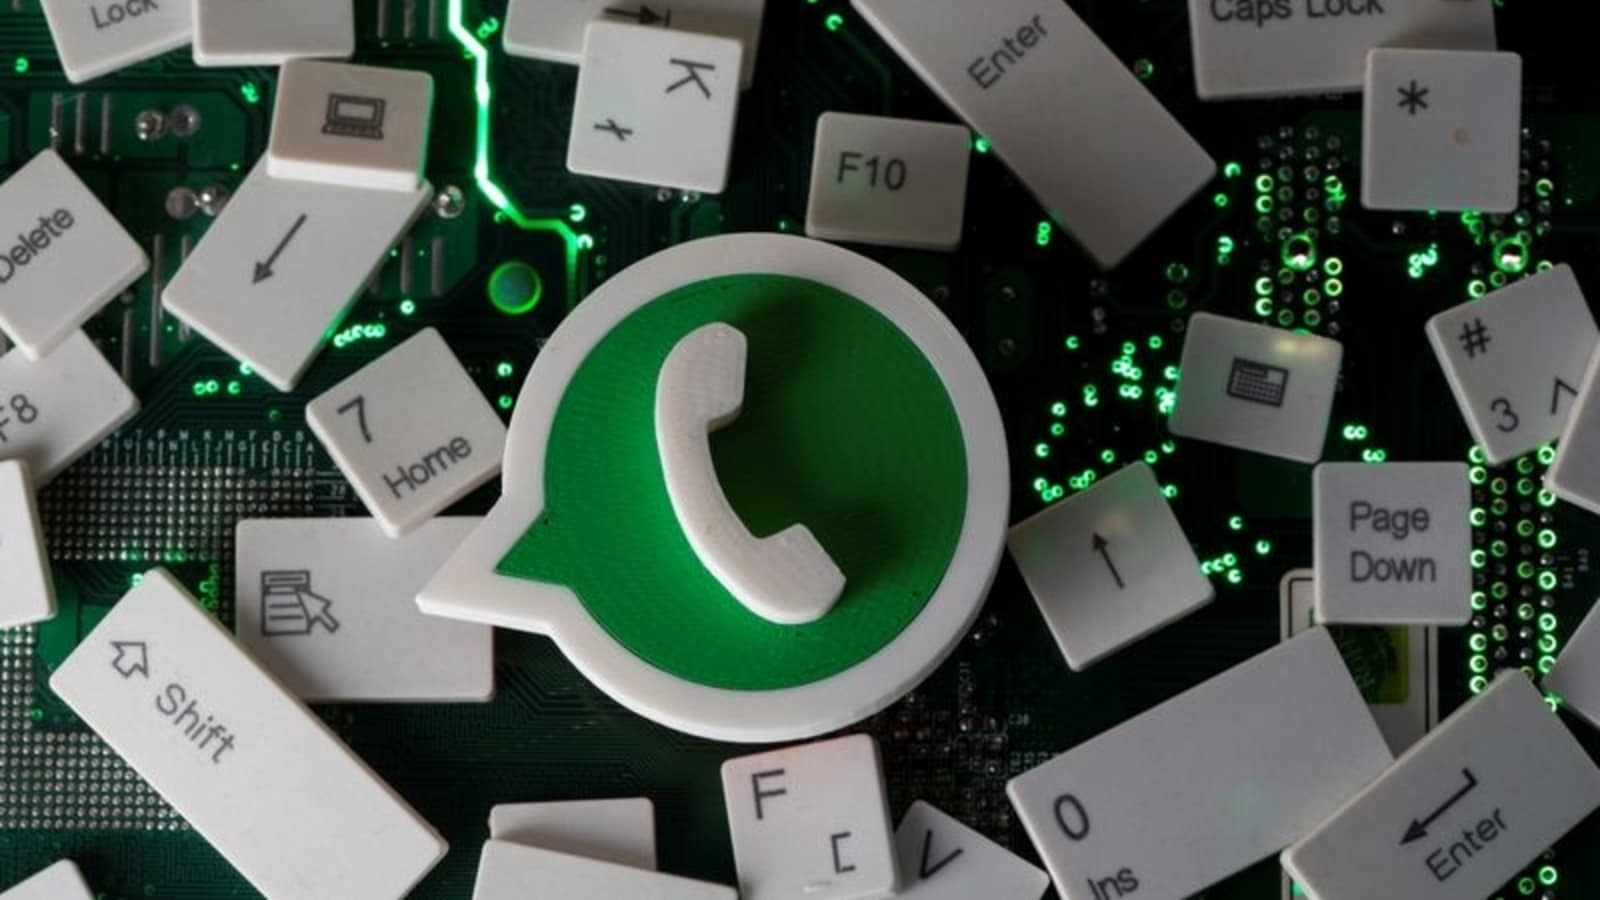 Here's how to delete your account if you don't like WhatsApp's updated privacy policy?